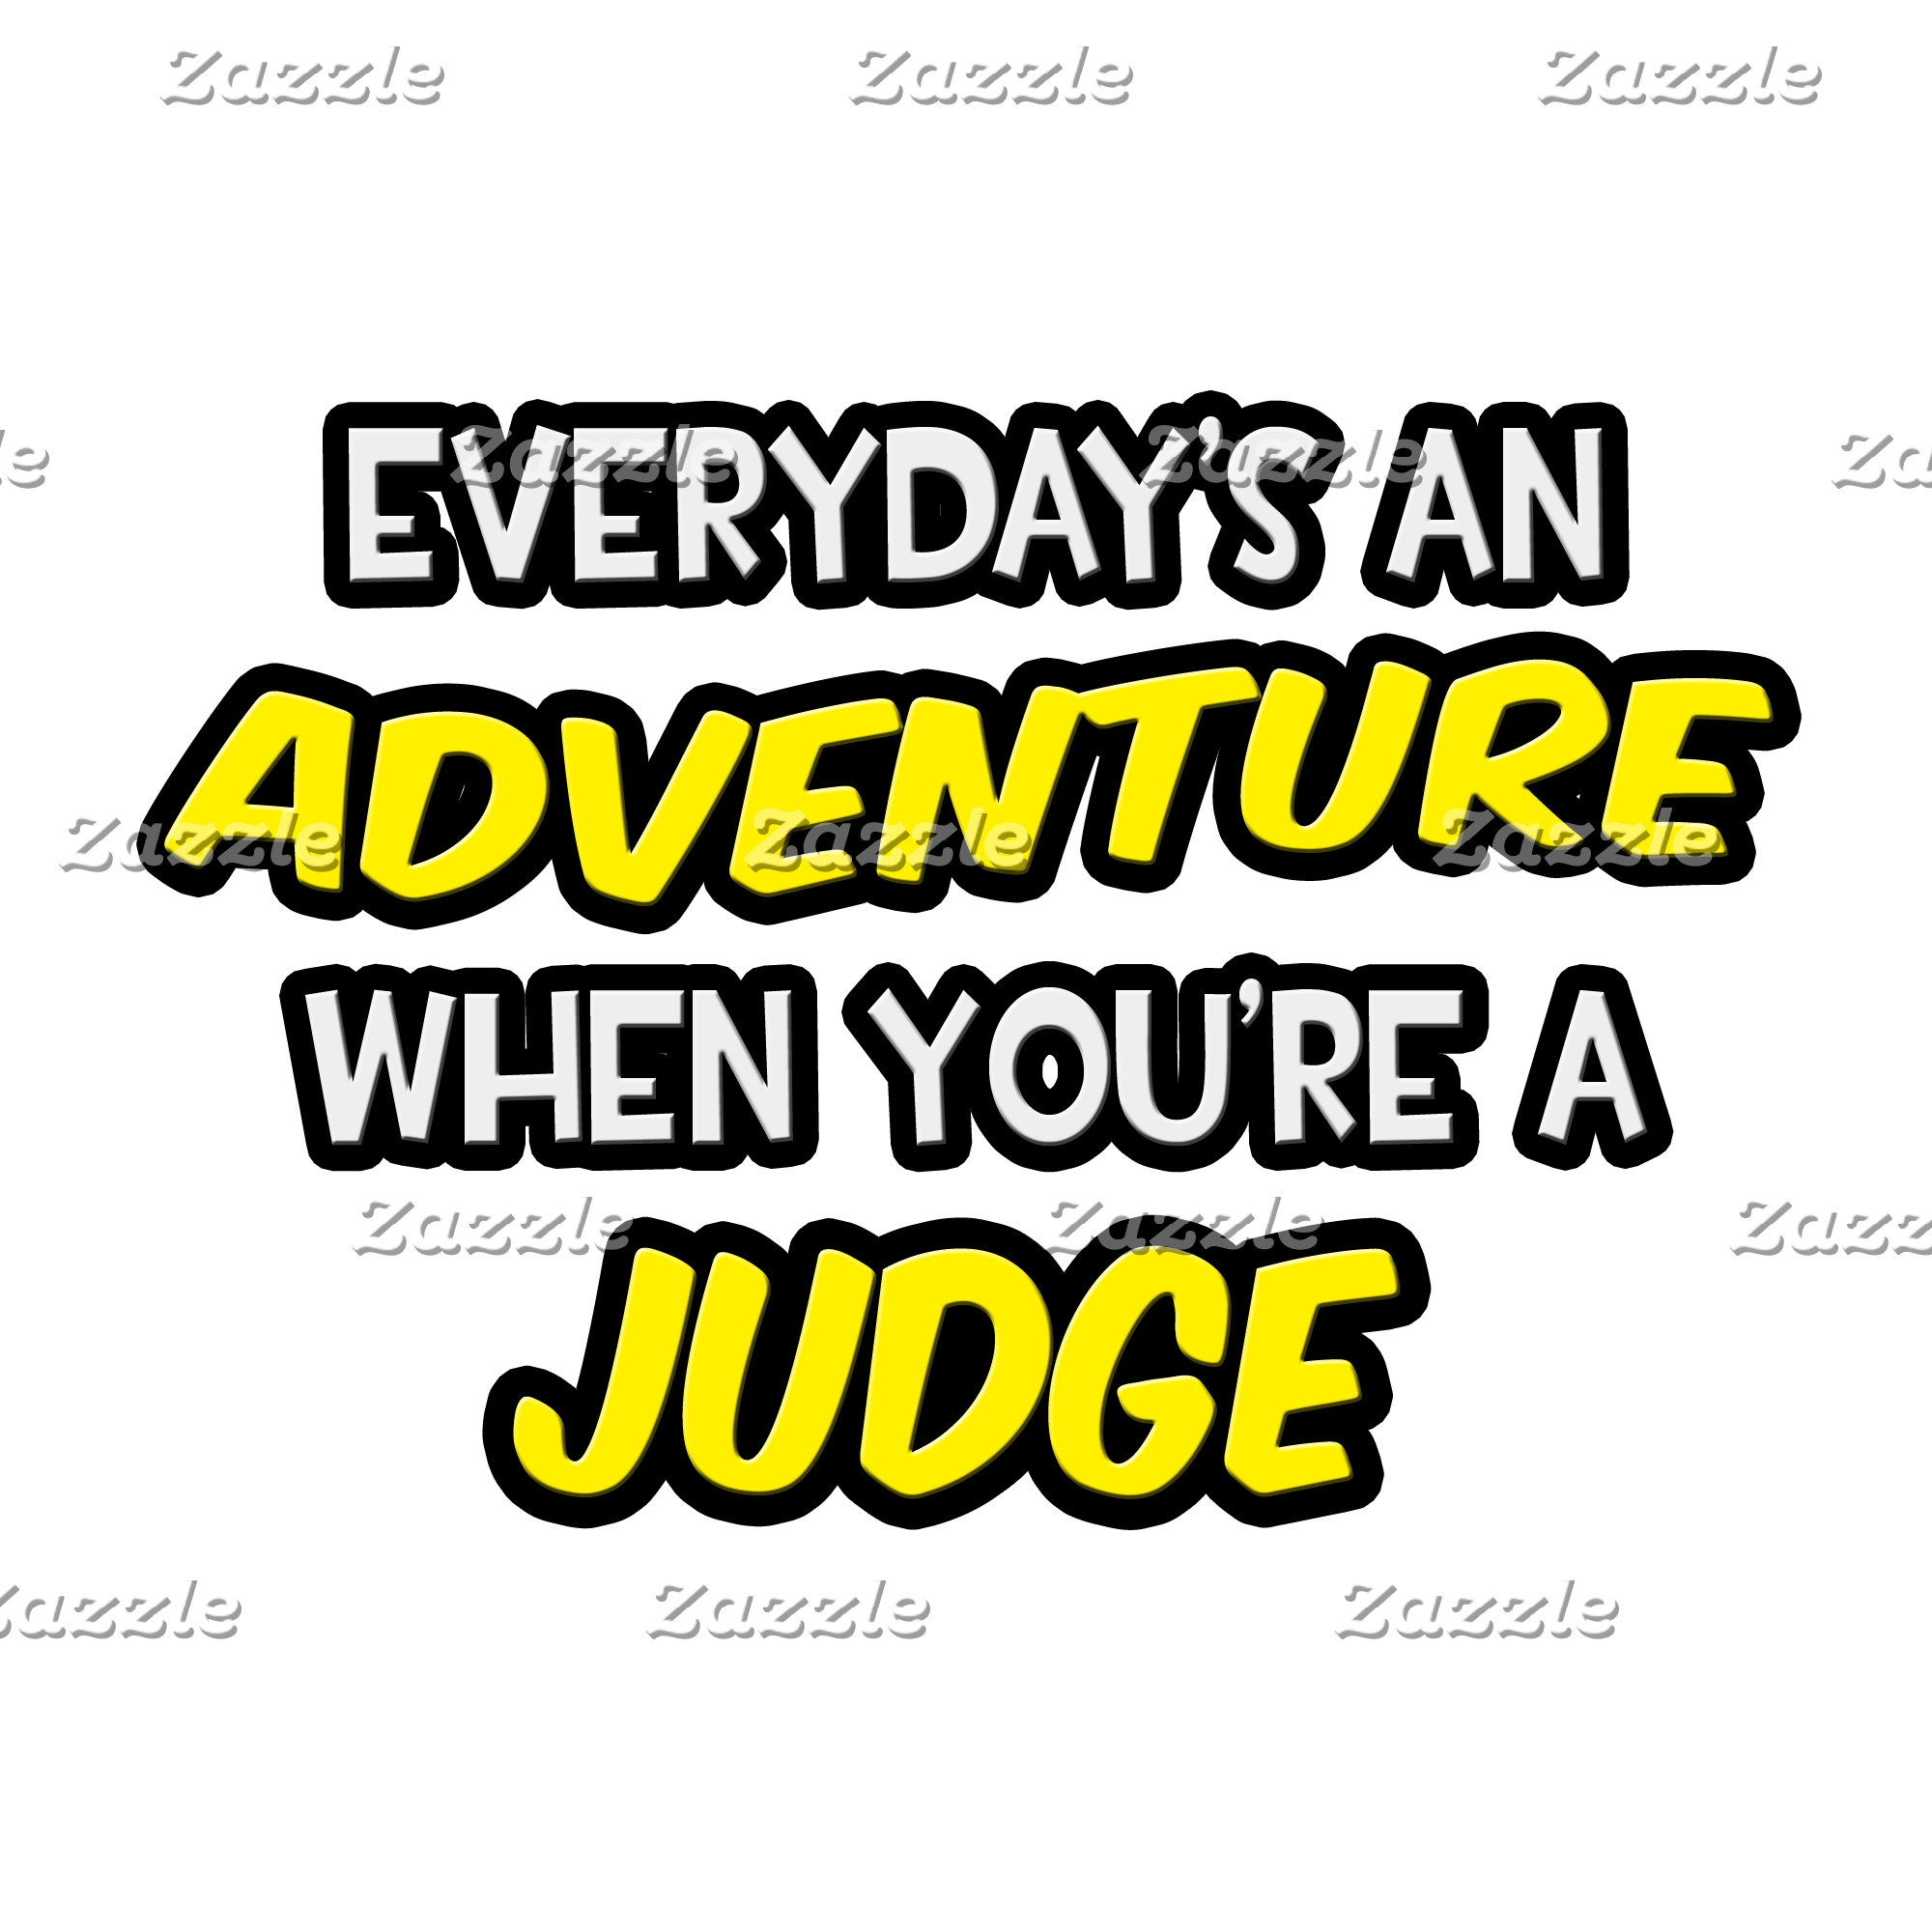 Everyday's An Adventure ... Judge